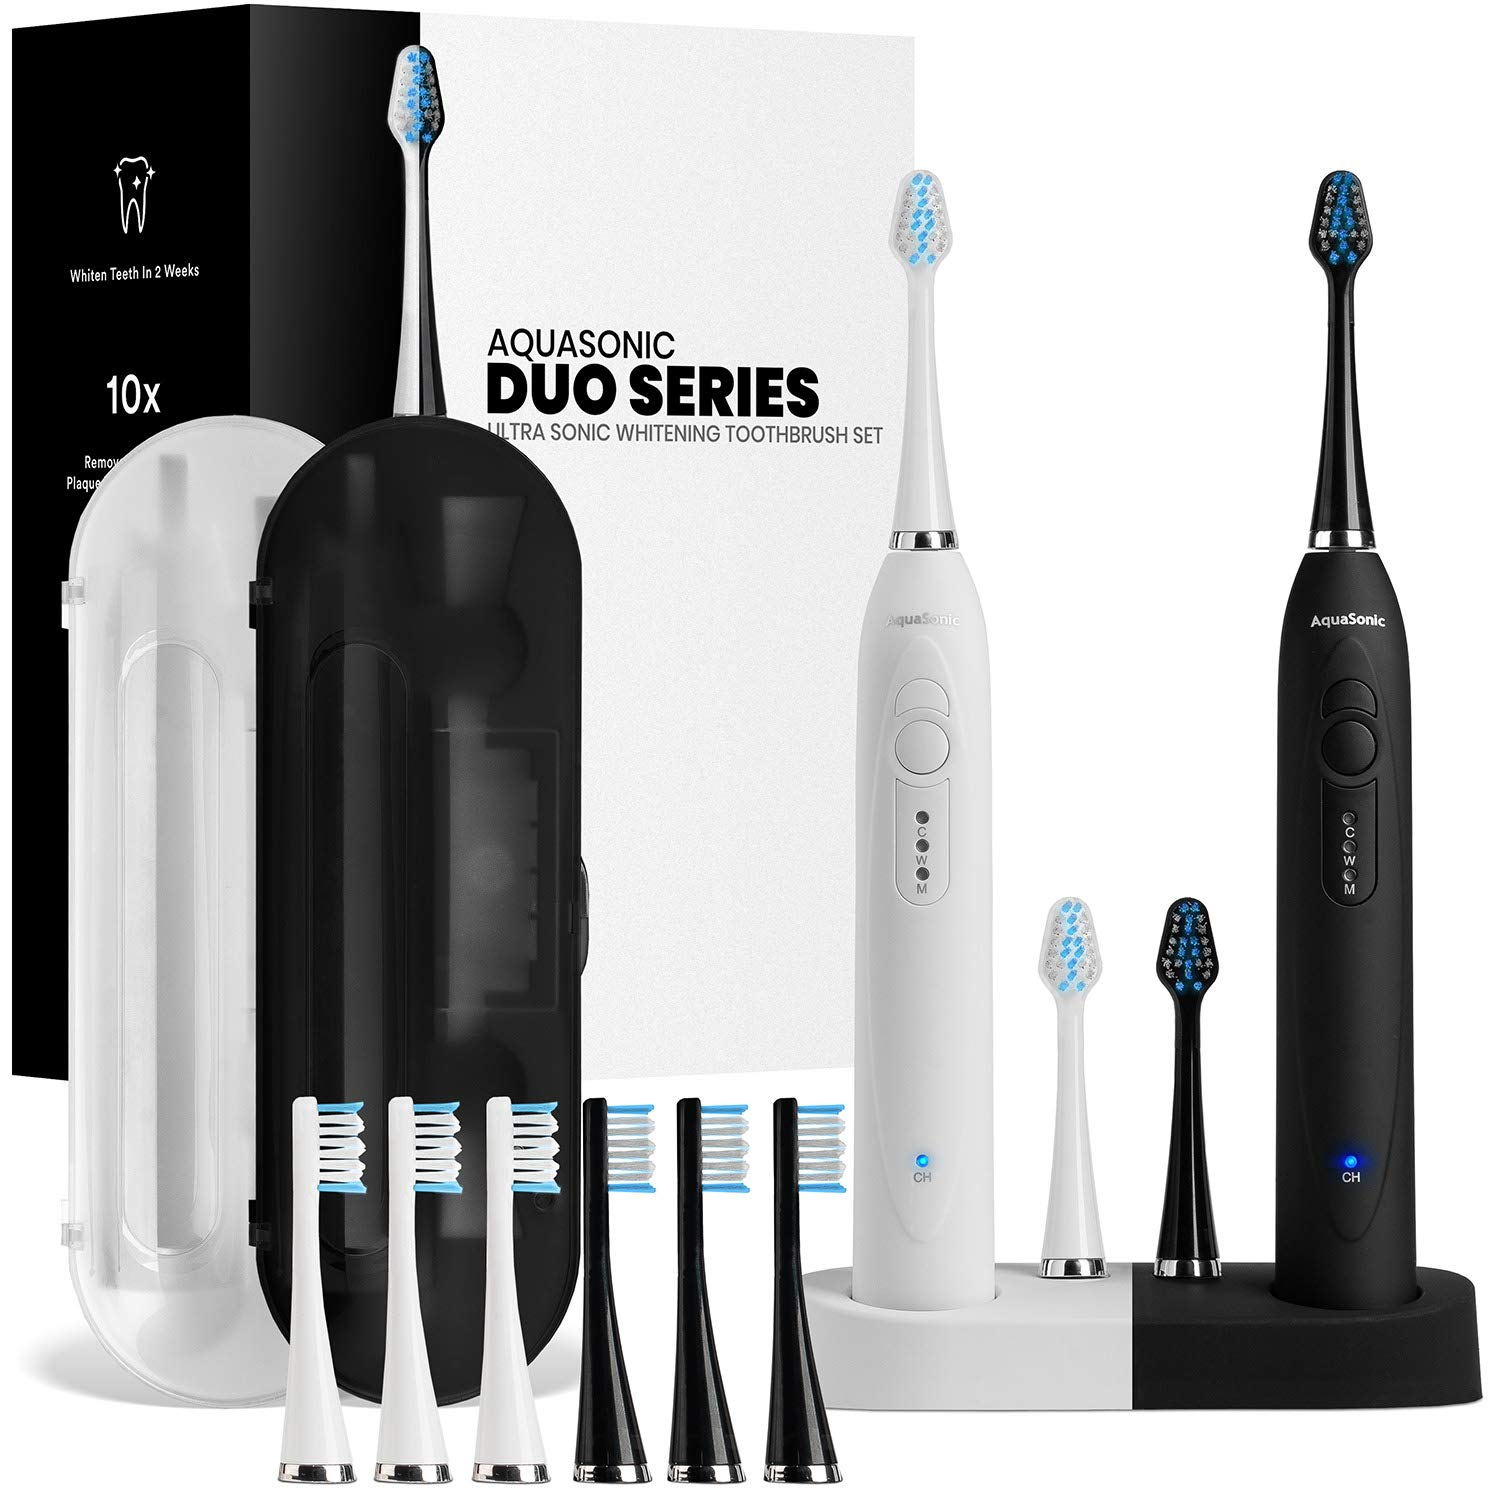 AquaSonic DUO - Dual Handle Ultra Whitening Rechargeable Electric ToothBrushes - 40,000 VPM Motor & Wireless Charging - 3 Modes with Smart Timers - 10 DuPont Brush Heads & 2 Travel Cases Included by Aquasonic (Image #1)